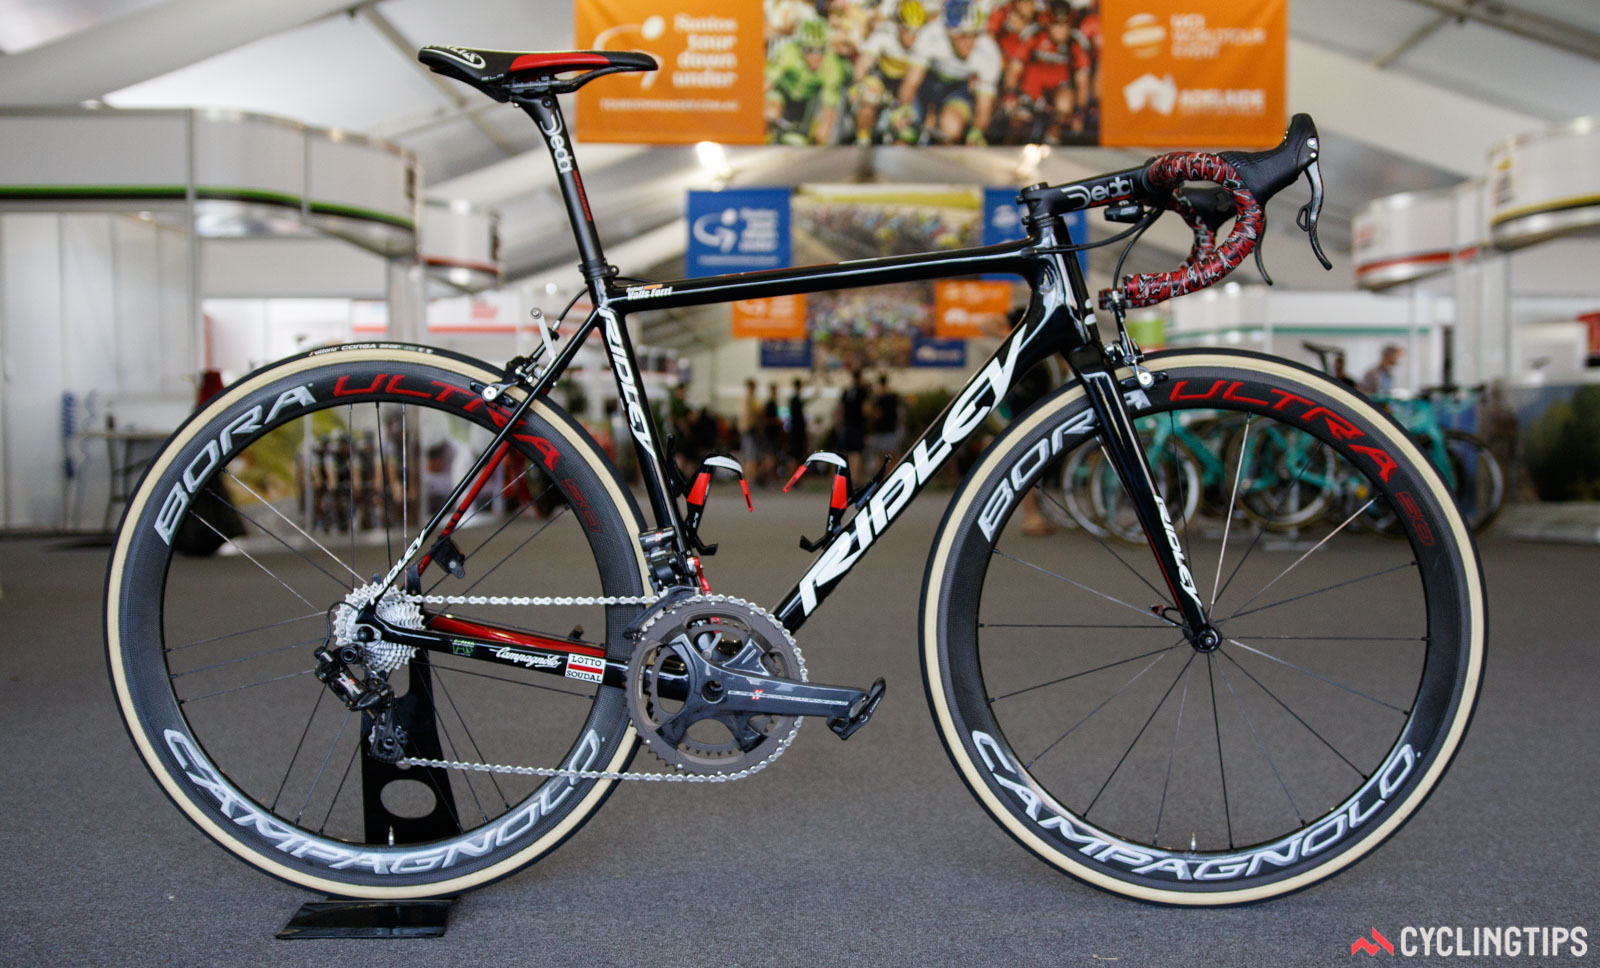 La bicicleta nueva en Tour Down Under 2017